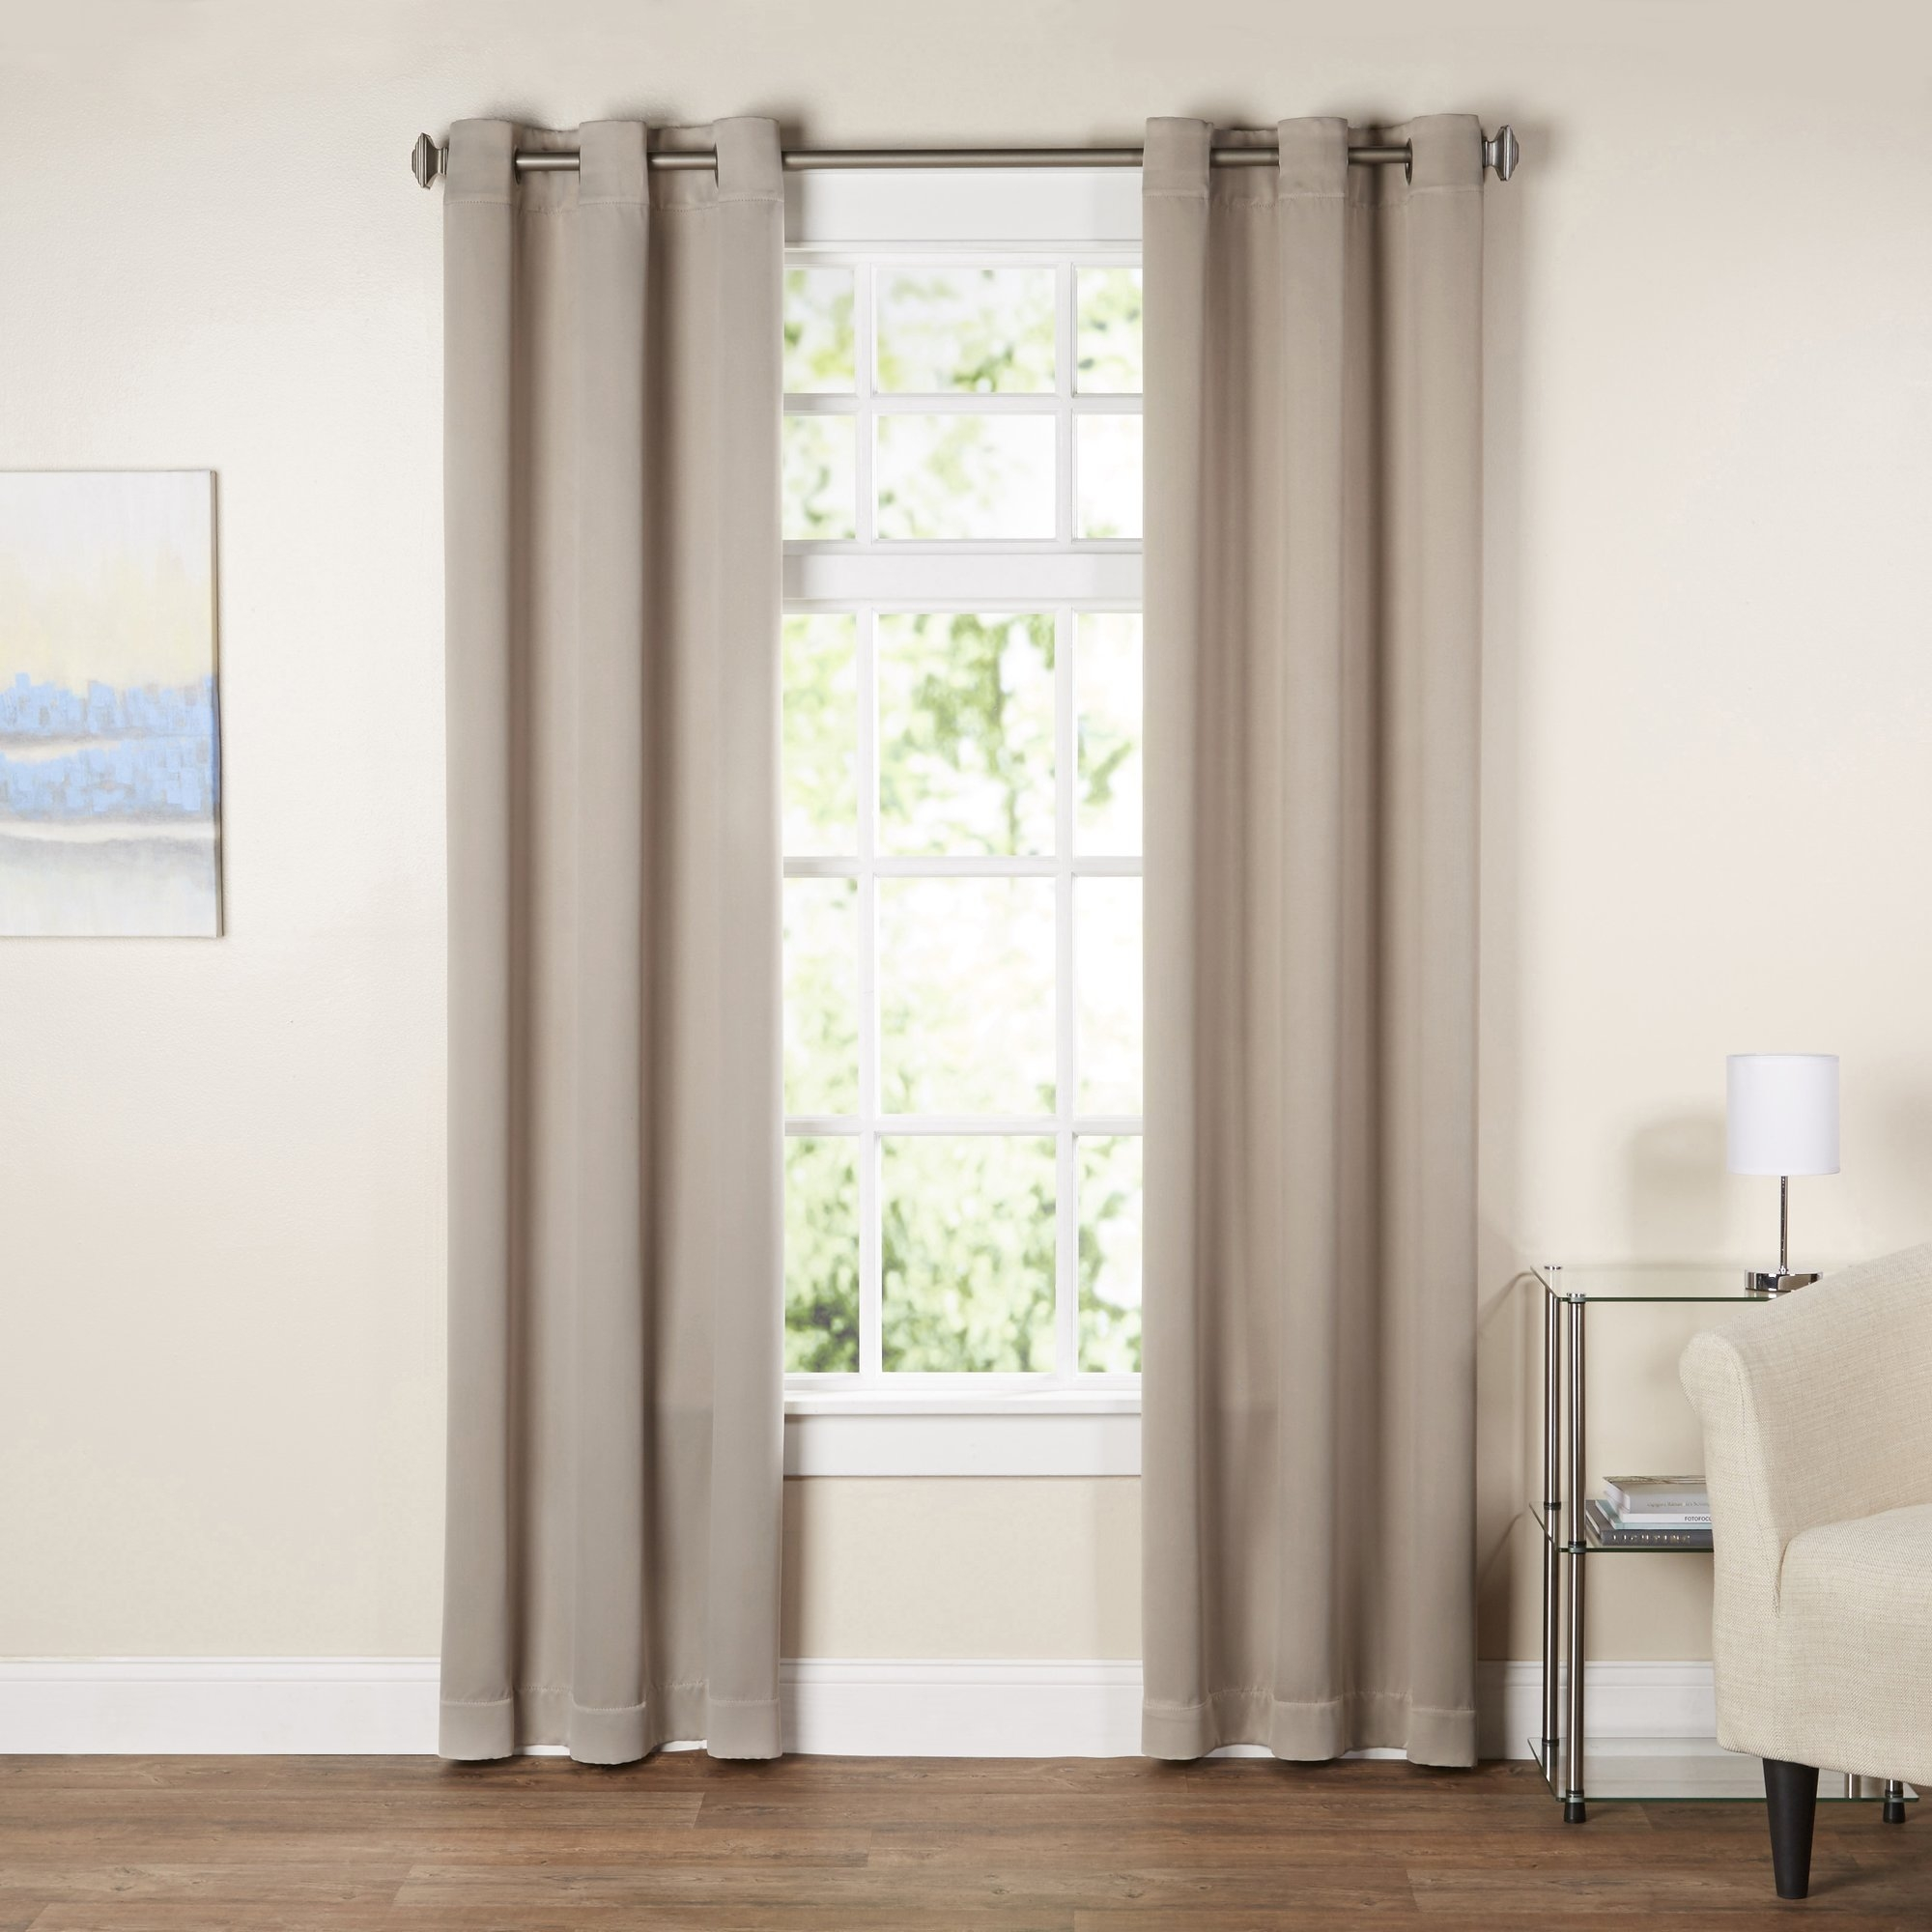 champagne curtains curtain proper wide living velour crushed extra room pleat pencil velvet uk next